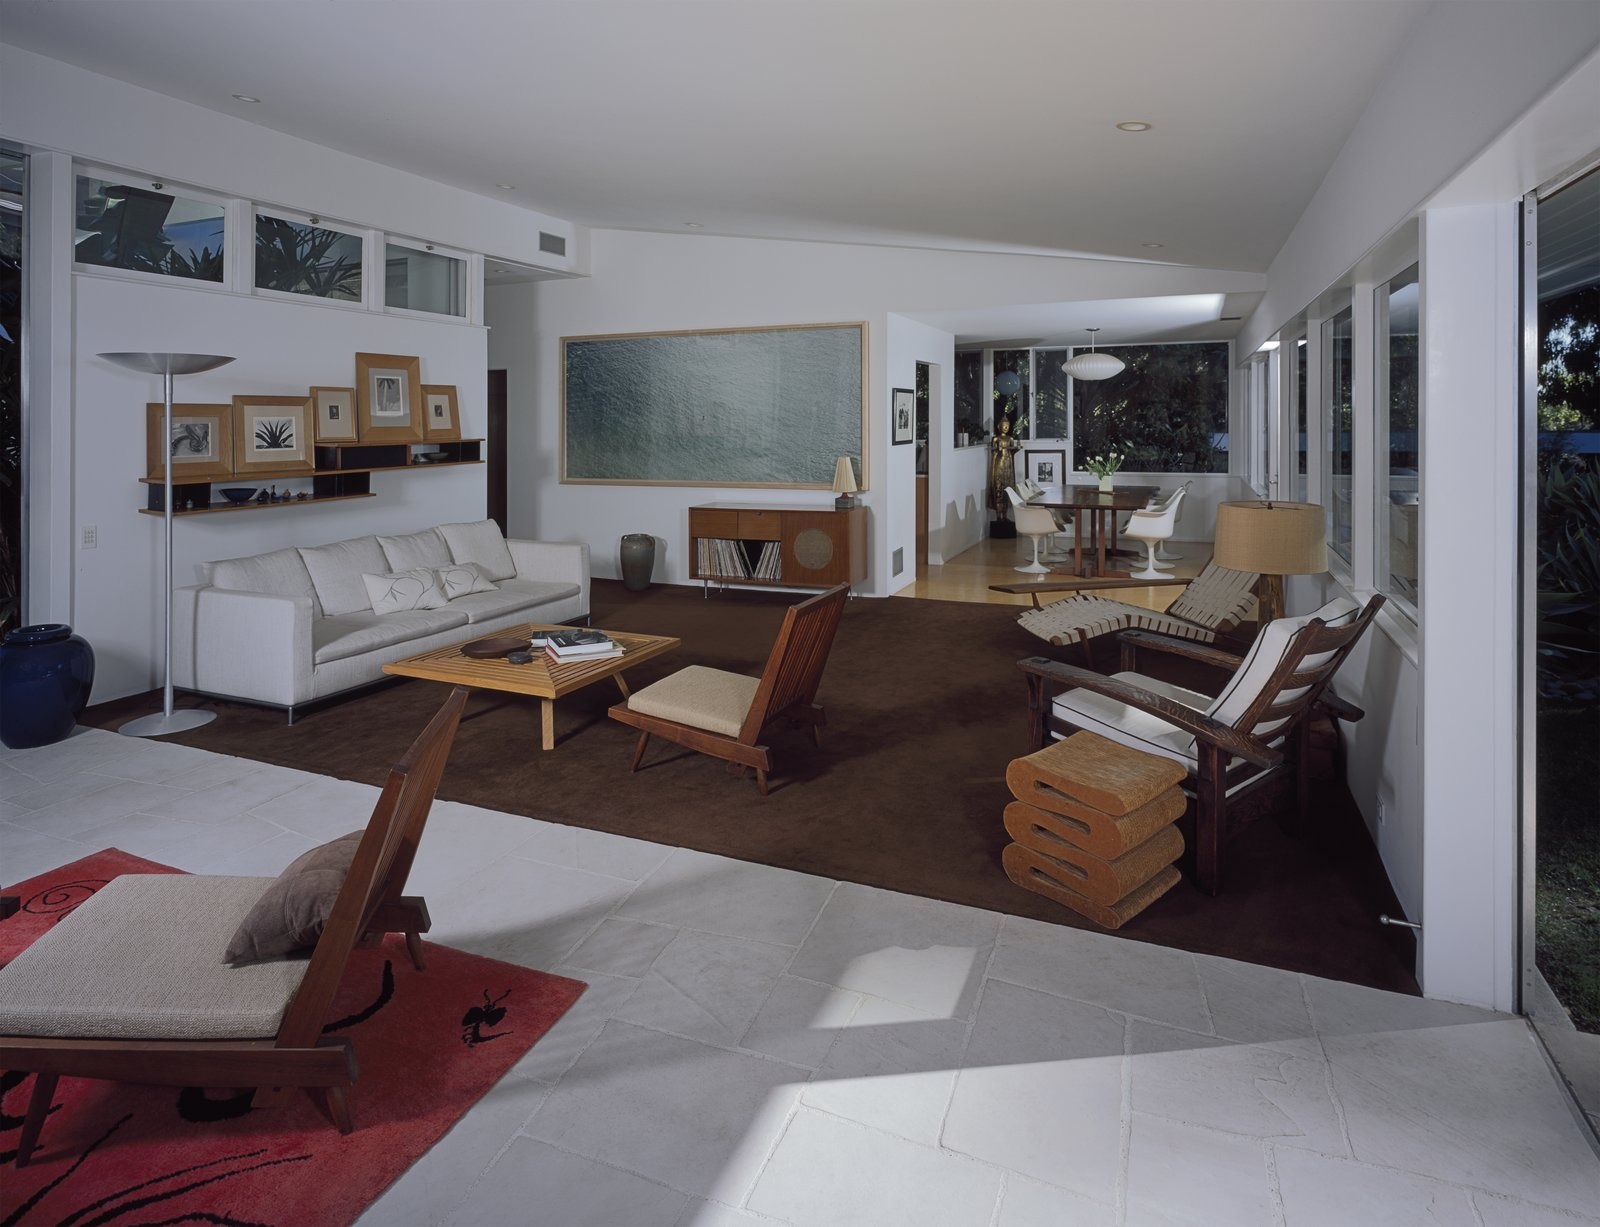 """The main space containing the living and dining area and kitchen was relatively unchanged. """"In consideration of the original vision, the additions blend with the original structure, and the basic idea of the open flow between the inside and the outside is maintained and reinforced in all areas,"""" the architect says.  Photo 5 of 6 in A Neutra Renovation in Los Angeles"""